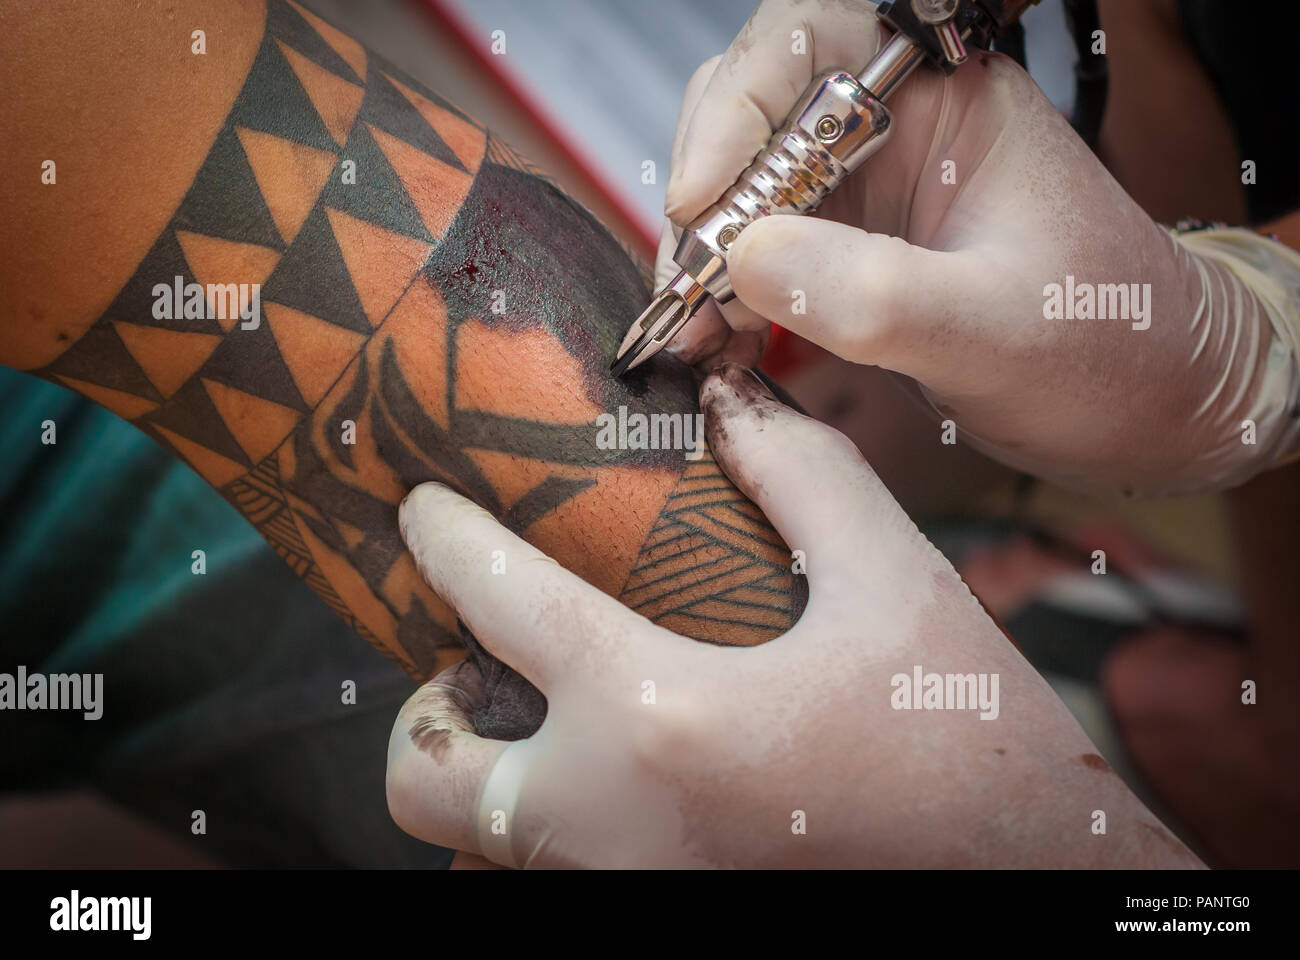 Unknown man having his tattoo made by a tattoo artist - Stock Image